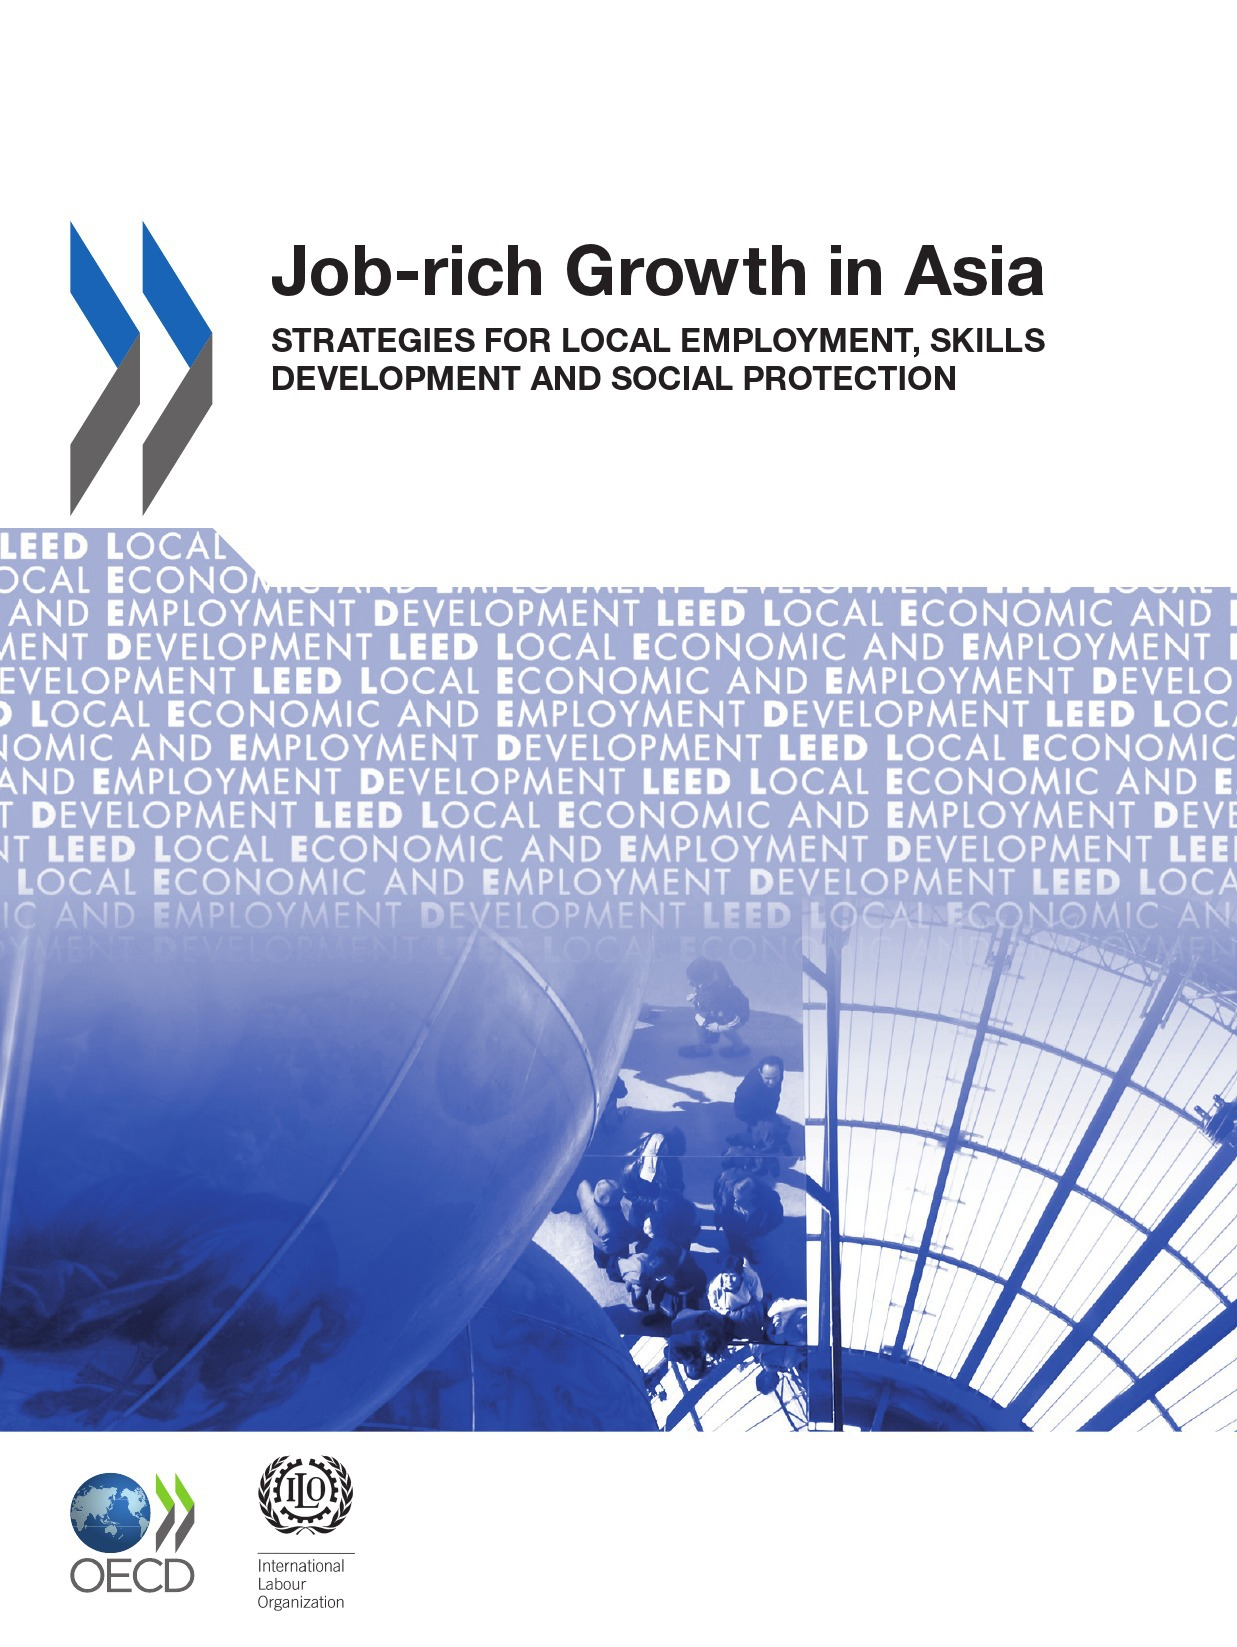 Collective Job-rich Growth in Asia